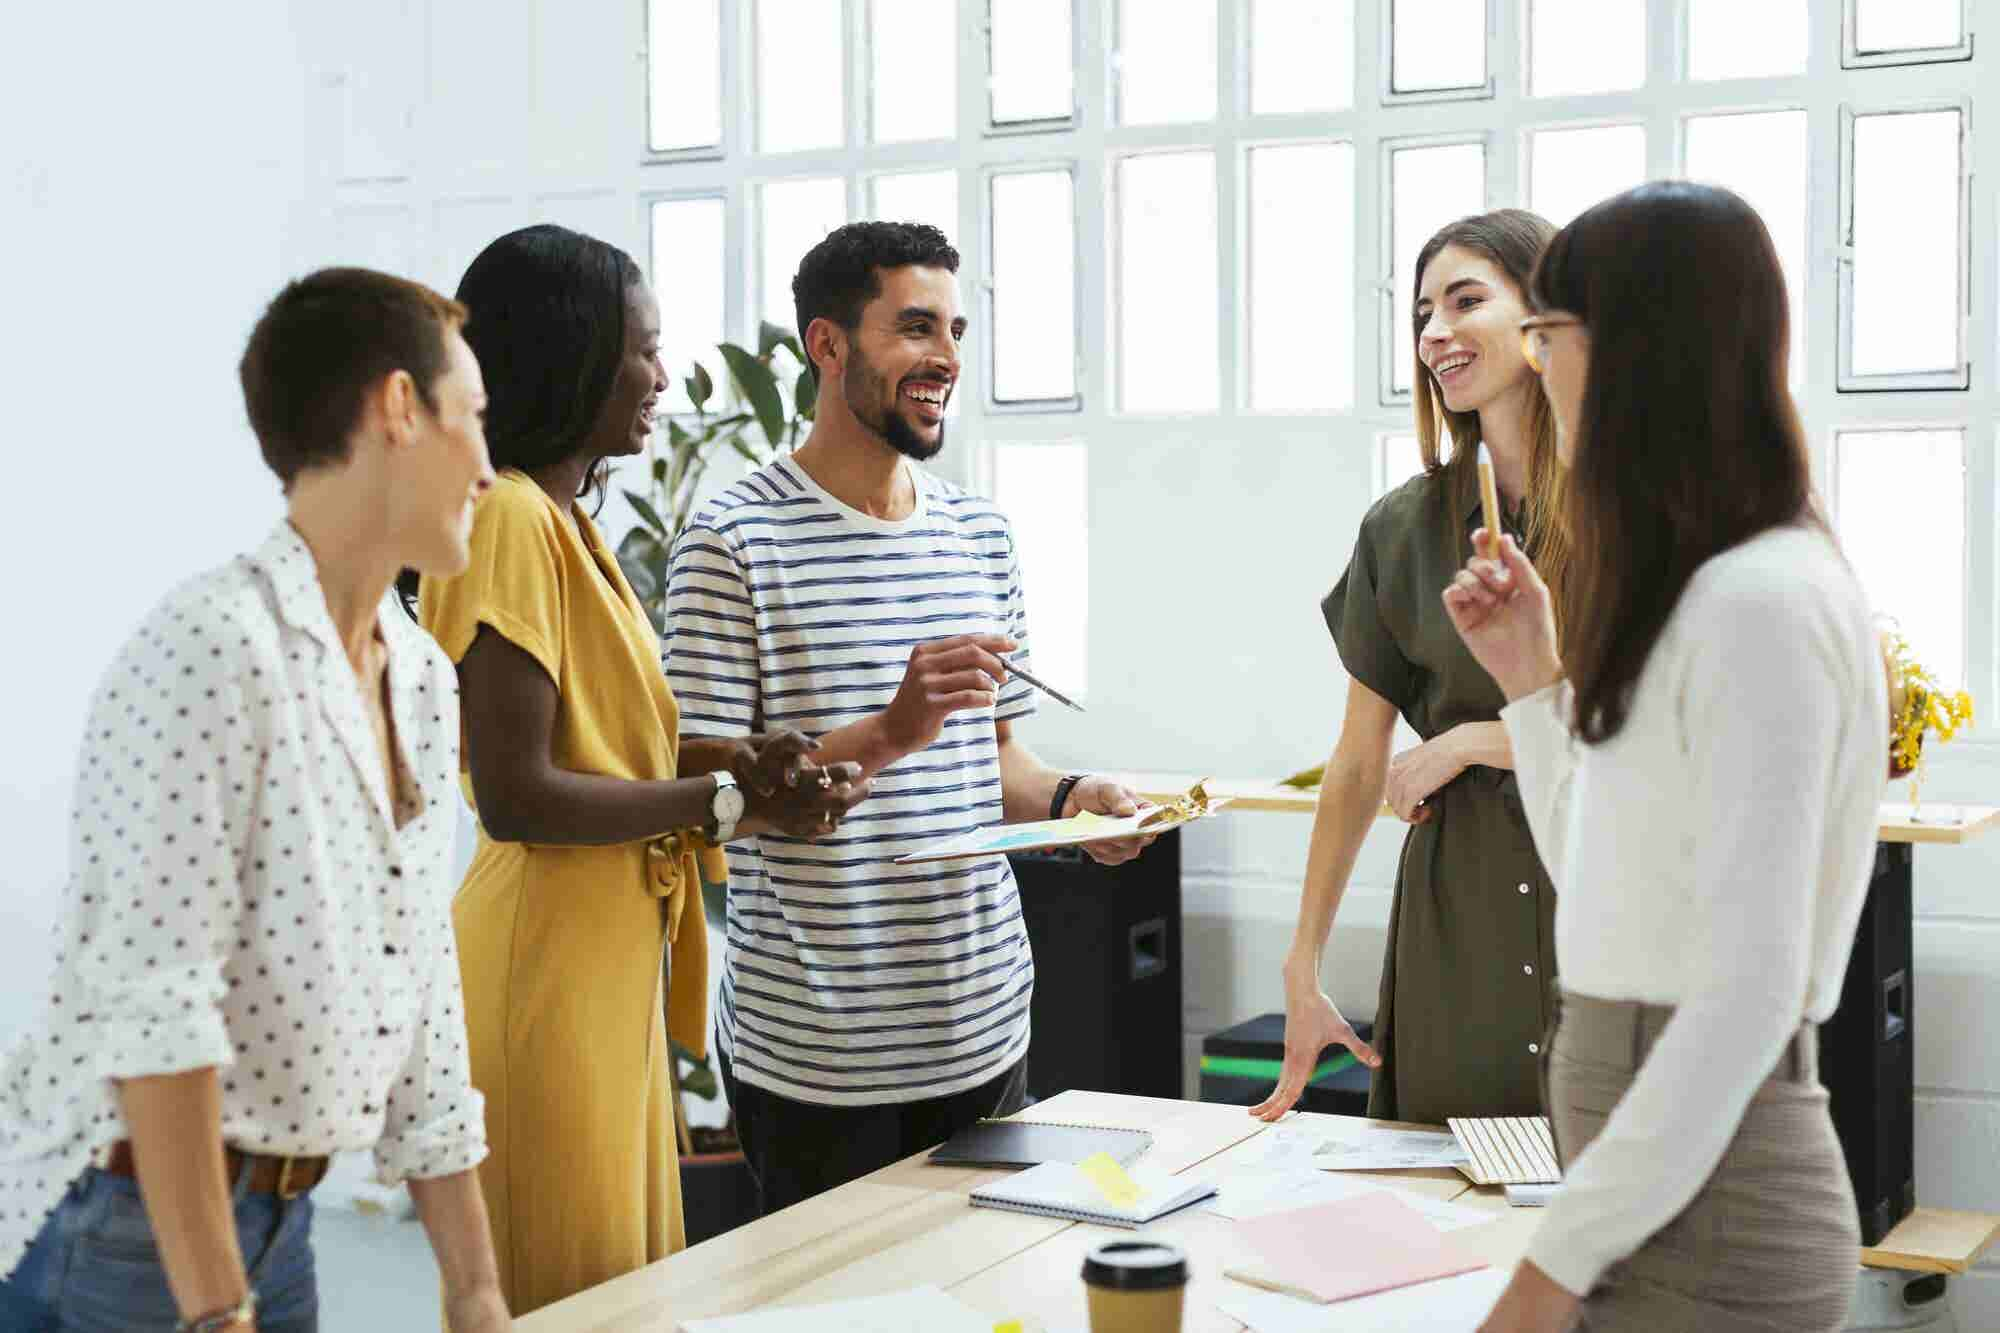 The 3 Ways You Should Value the People Who Are Key to Your Business